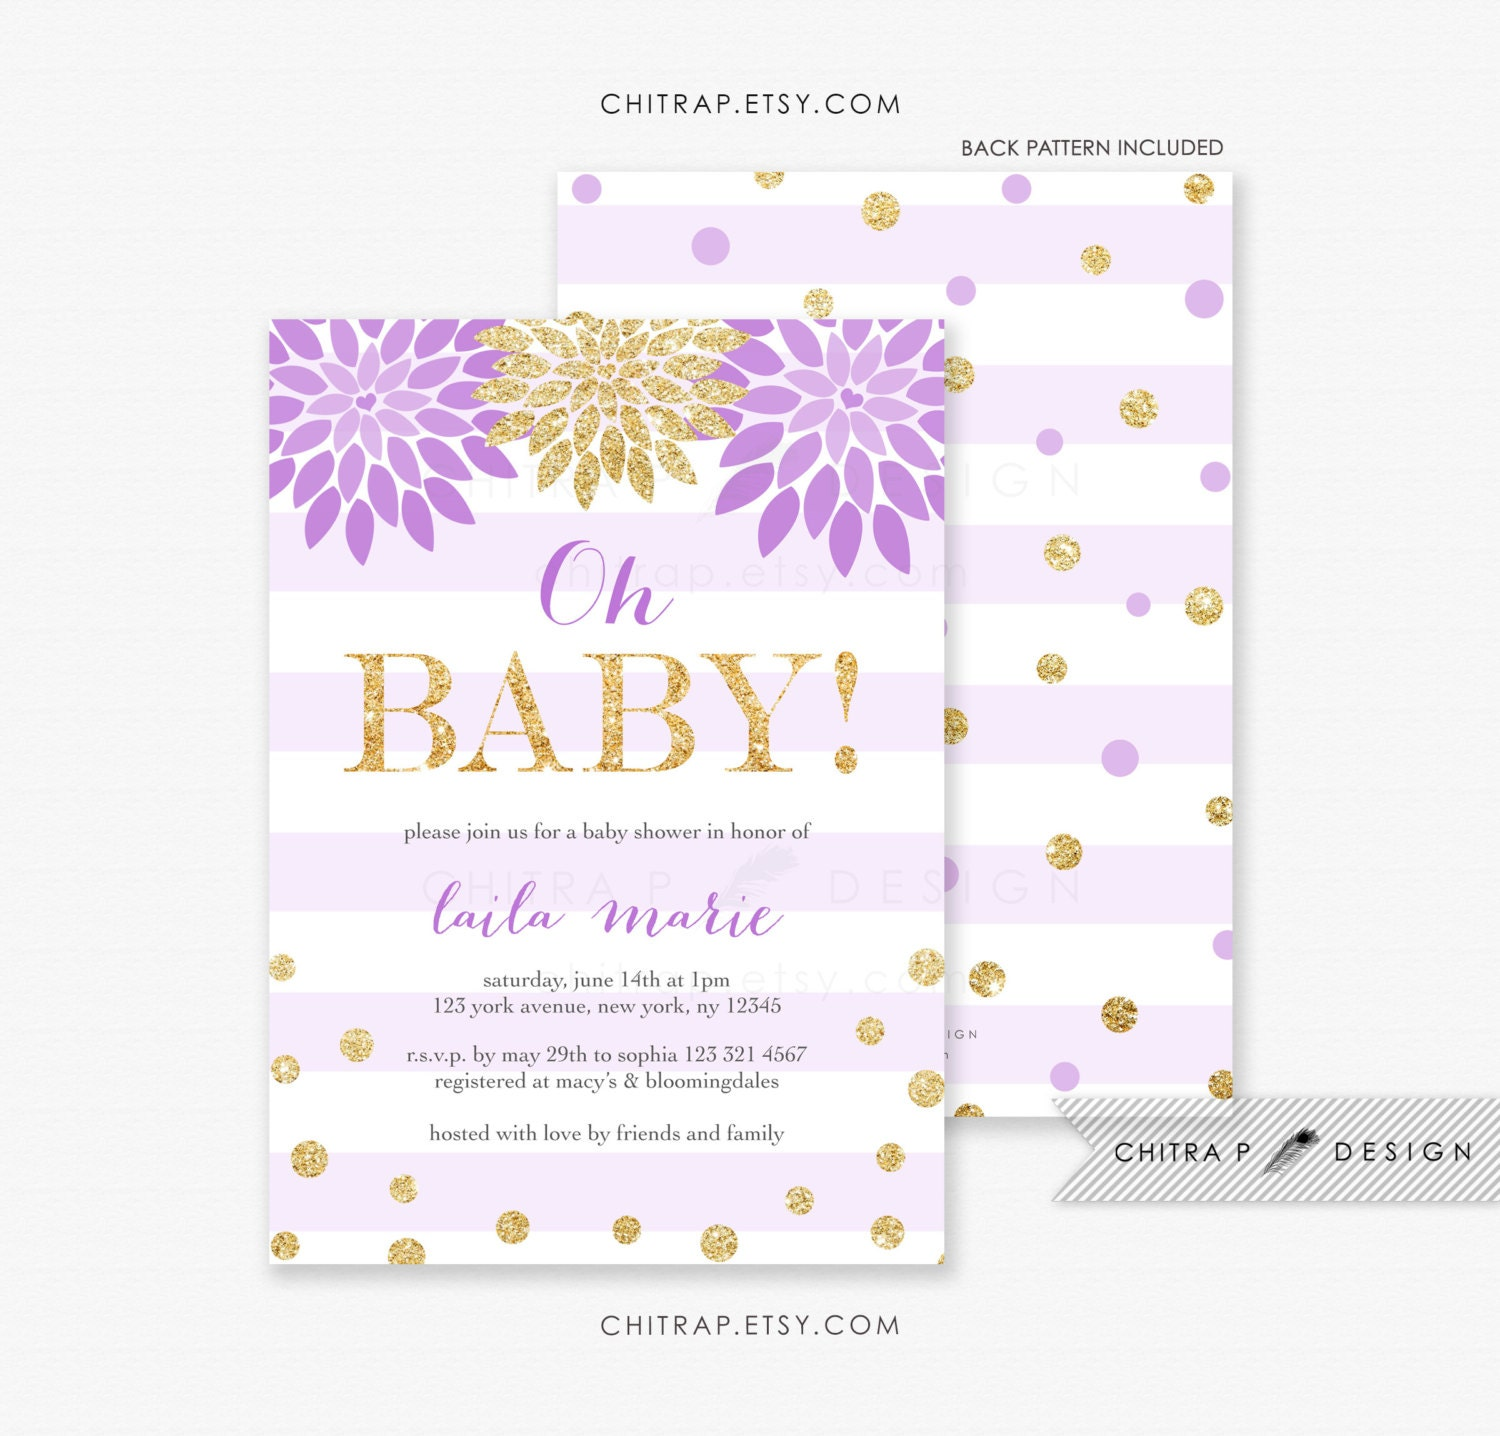 oh baby shower invitation printed purple lavender gold